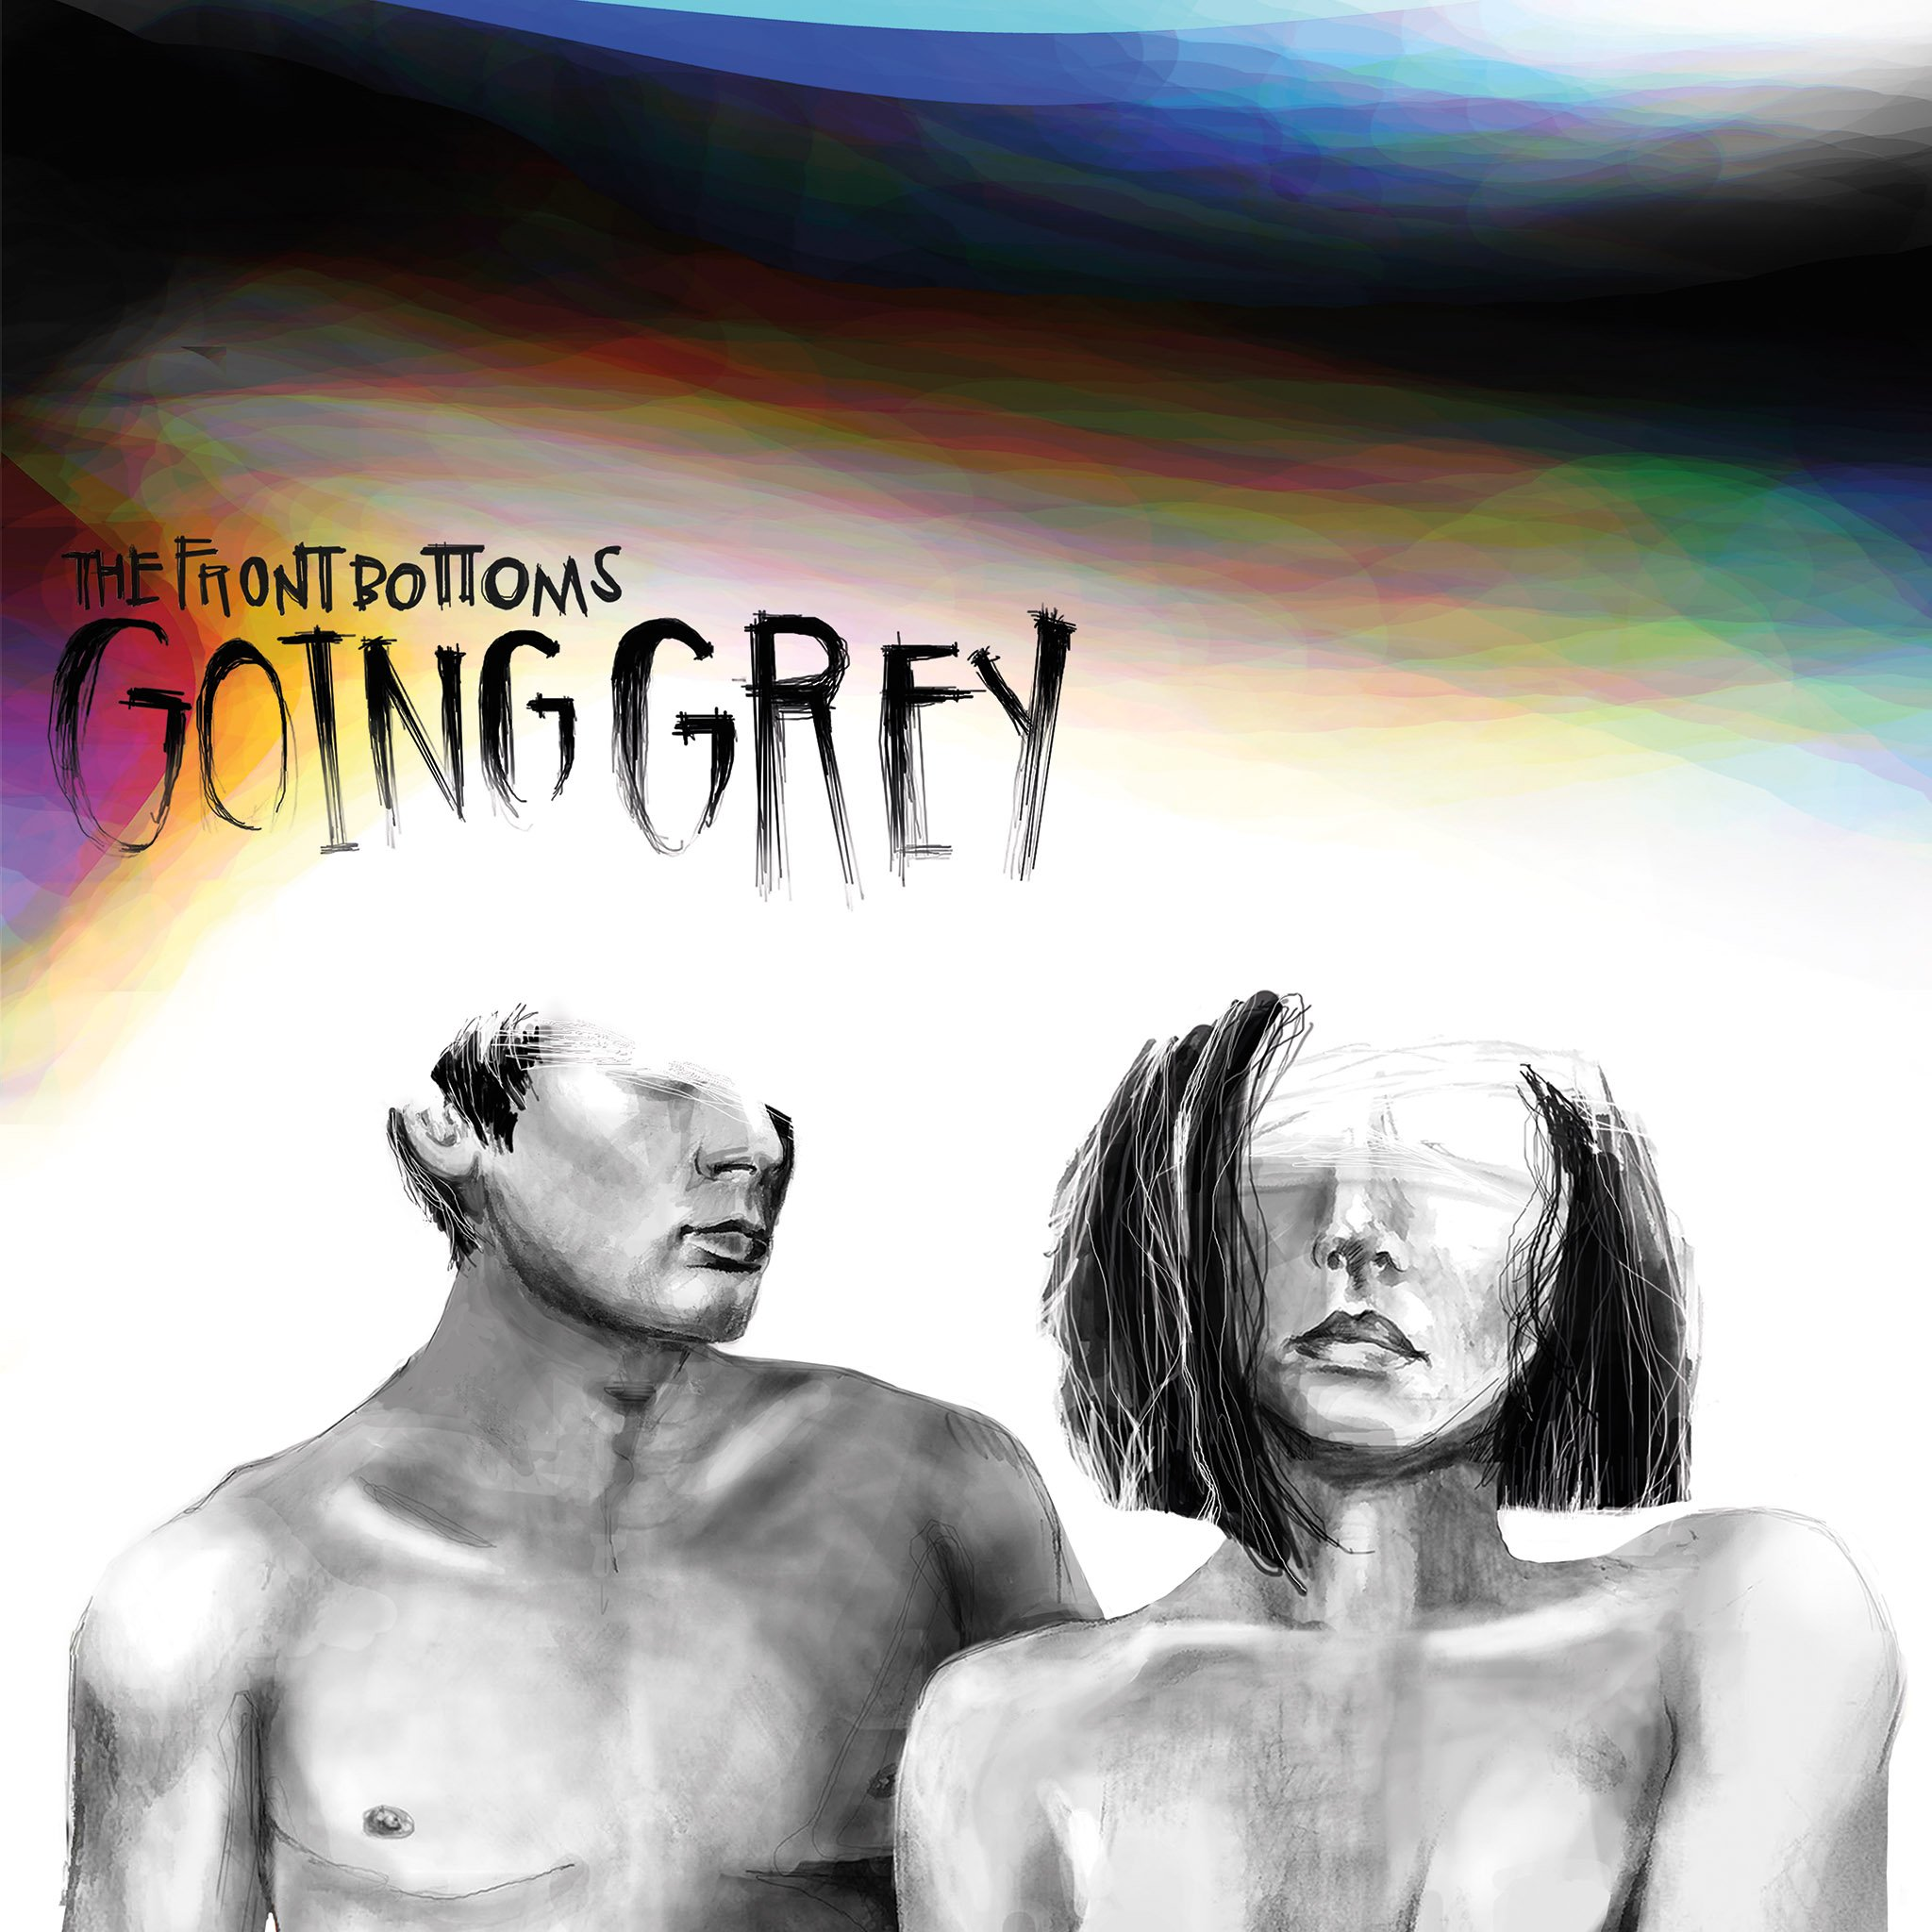 GOING GREY - OUT NOW Download or stream it at: https://t.co/htZ8B6XSAK https://t.co/dWV4IYrfkl